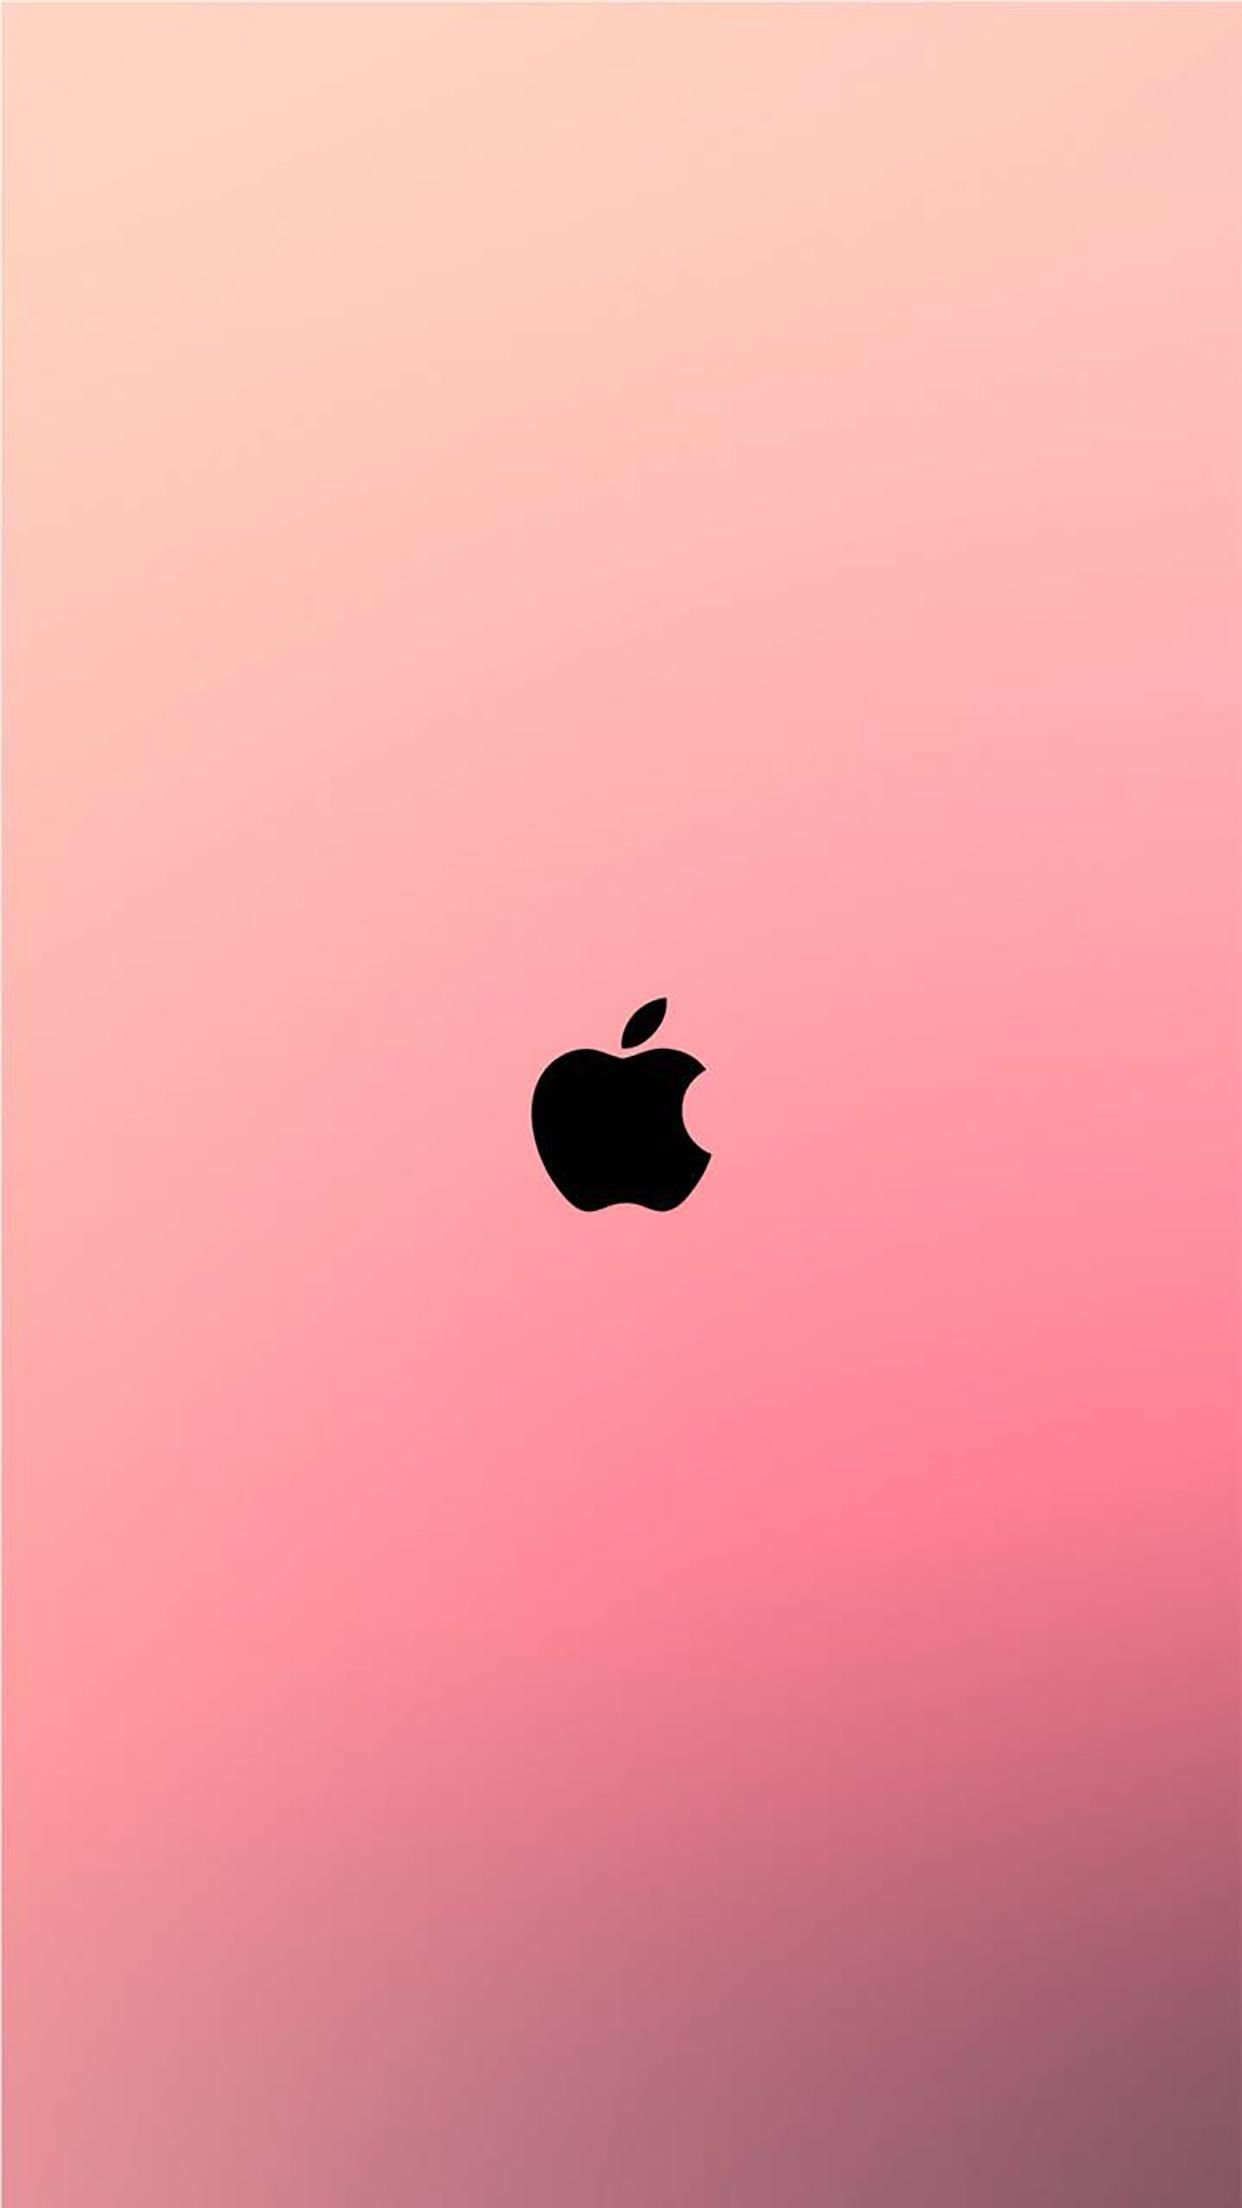 logo wallpaper iphone